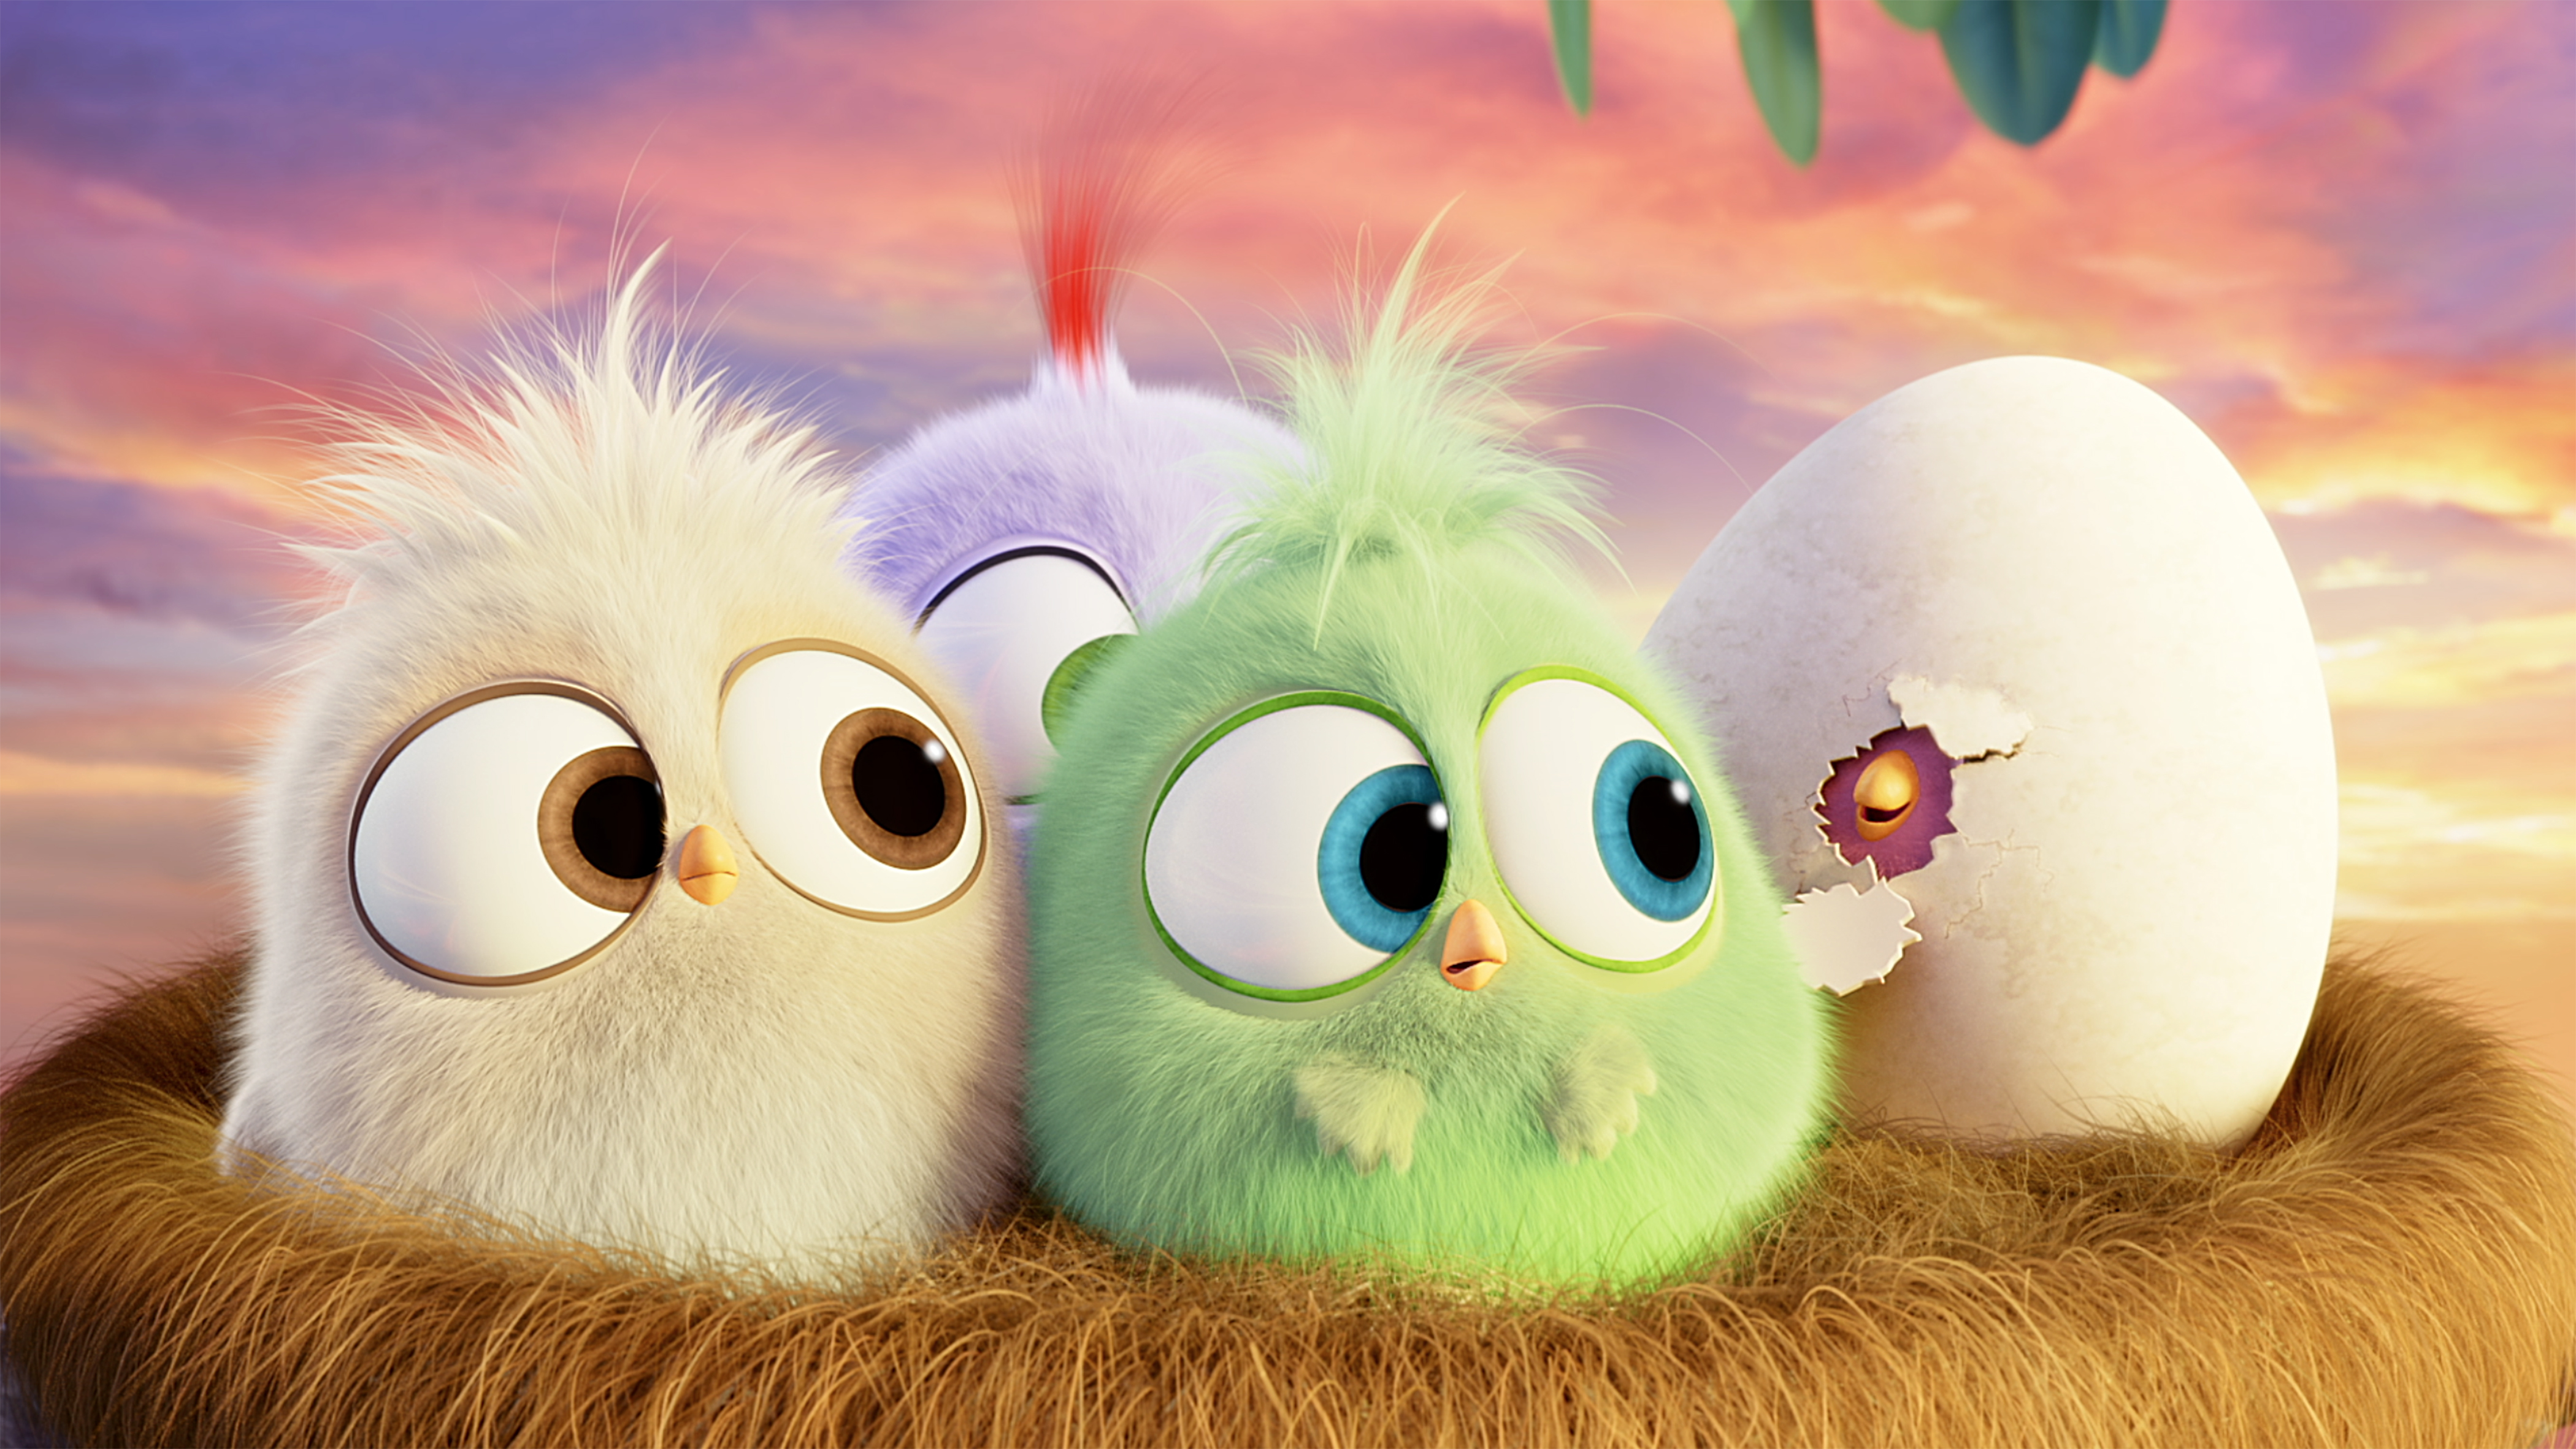 Hatchlings Angry Birds Hd Movies 4k Wallpapers Images Backgrounds Photos And Pictures